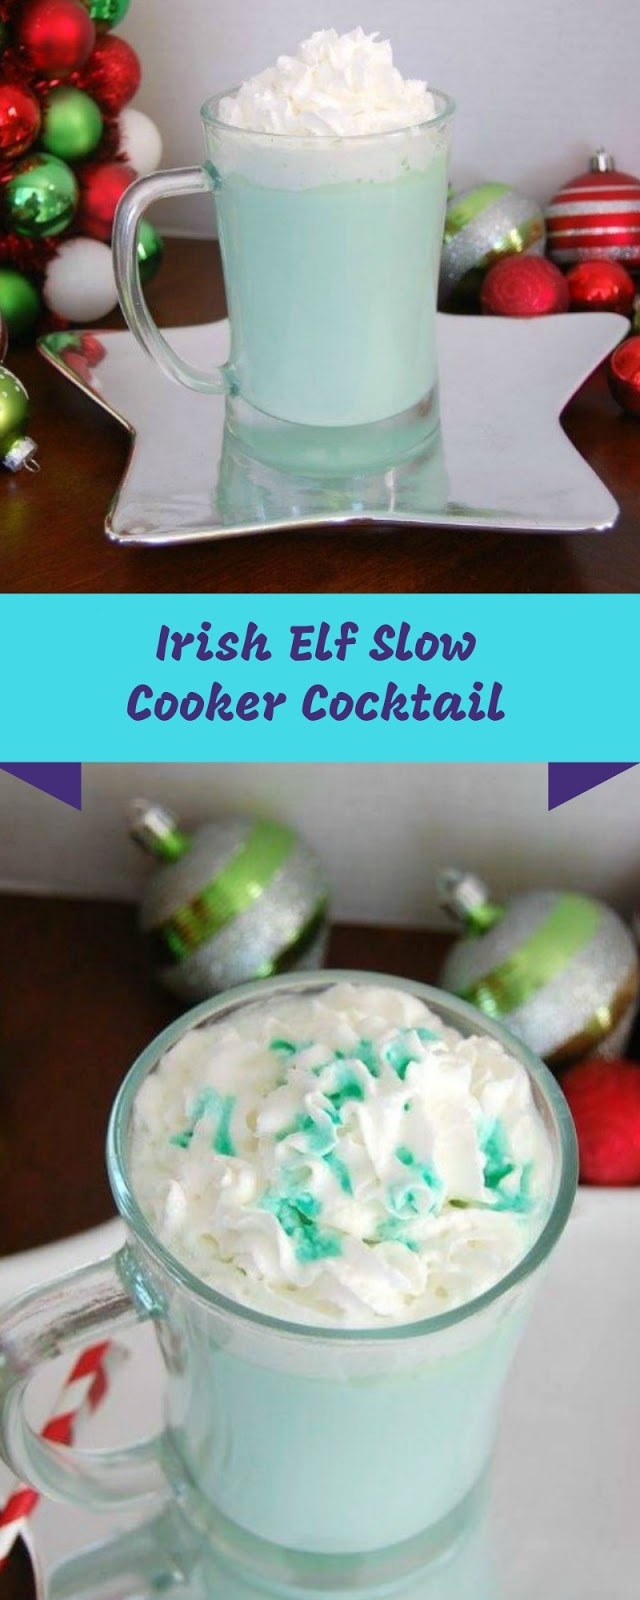 Irish Elf Slow Cooker Cocktail